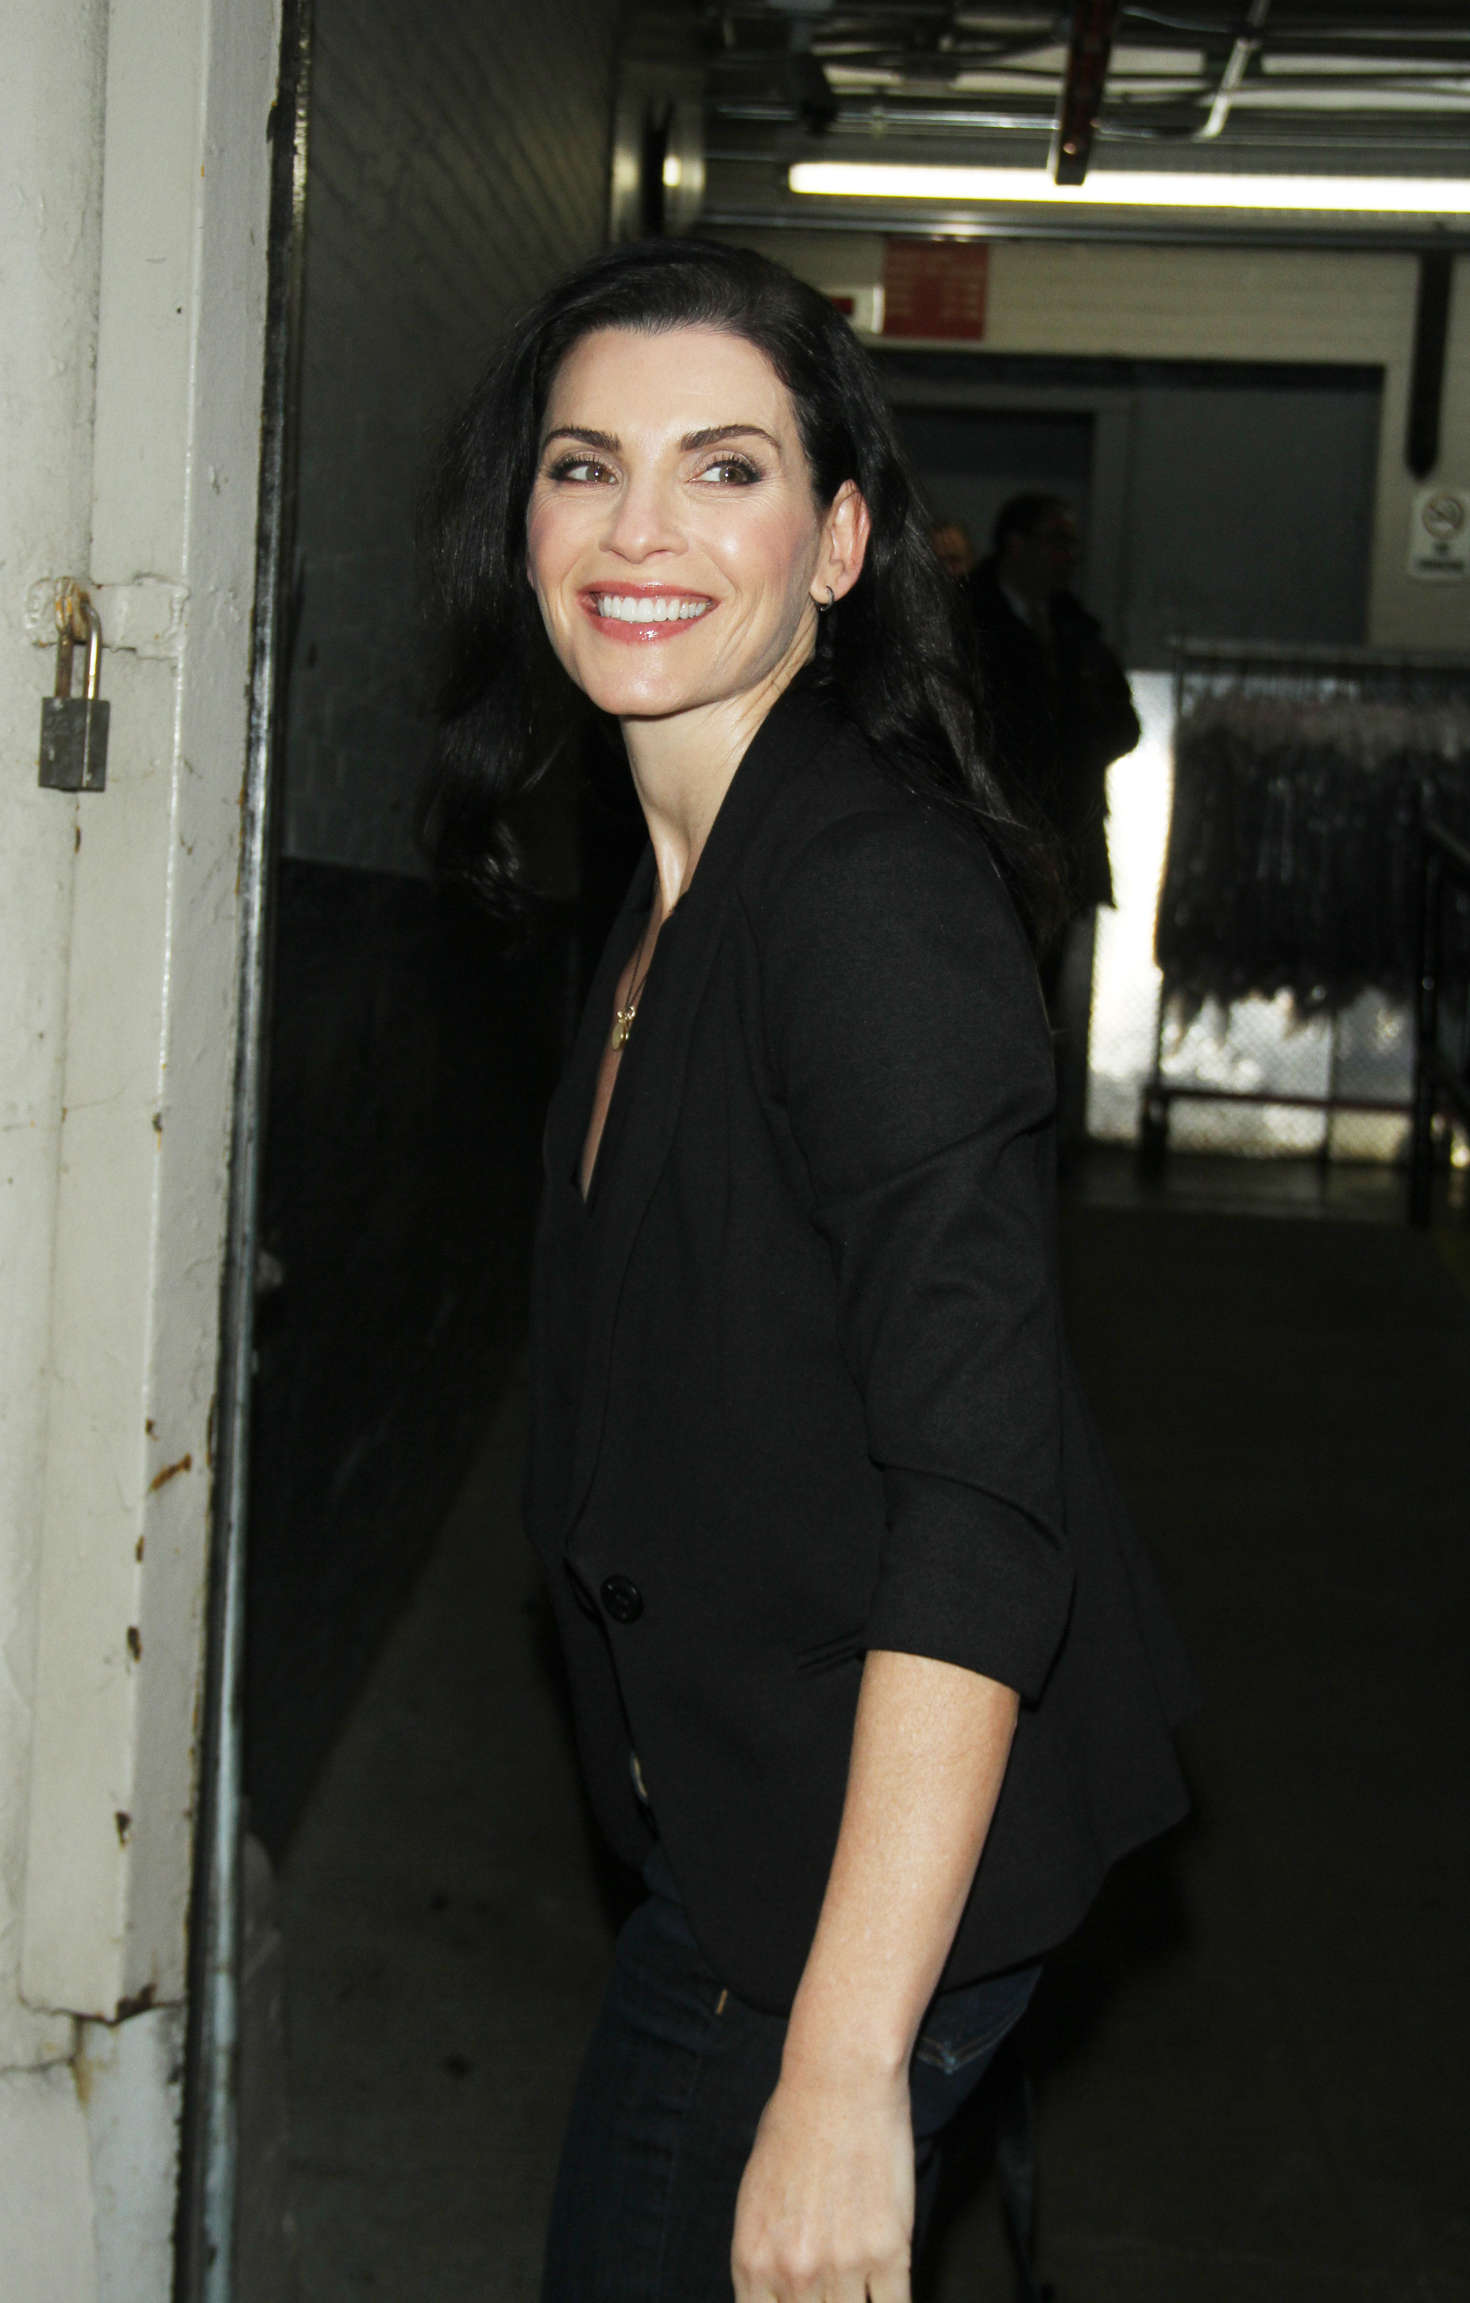 Julianna Margulies Arrives at AOL Build promoting her CBS series The Good Wife in New York